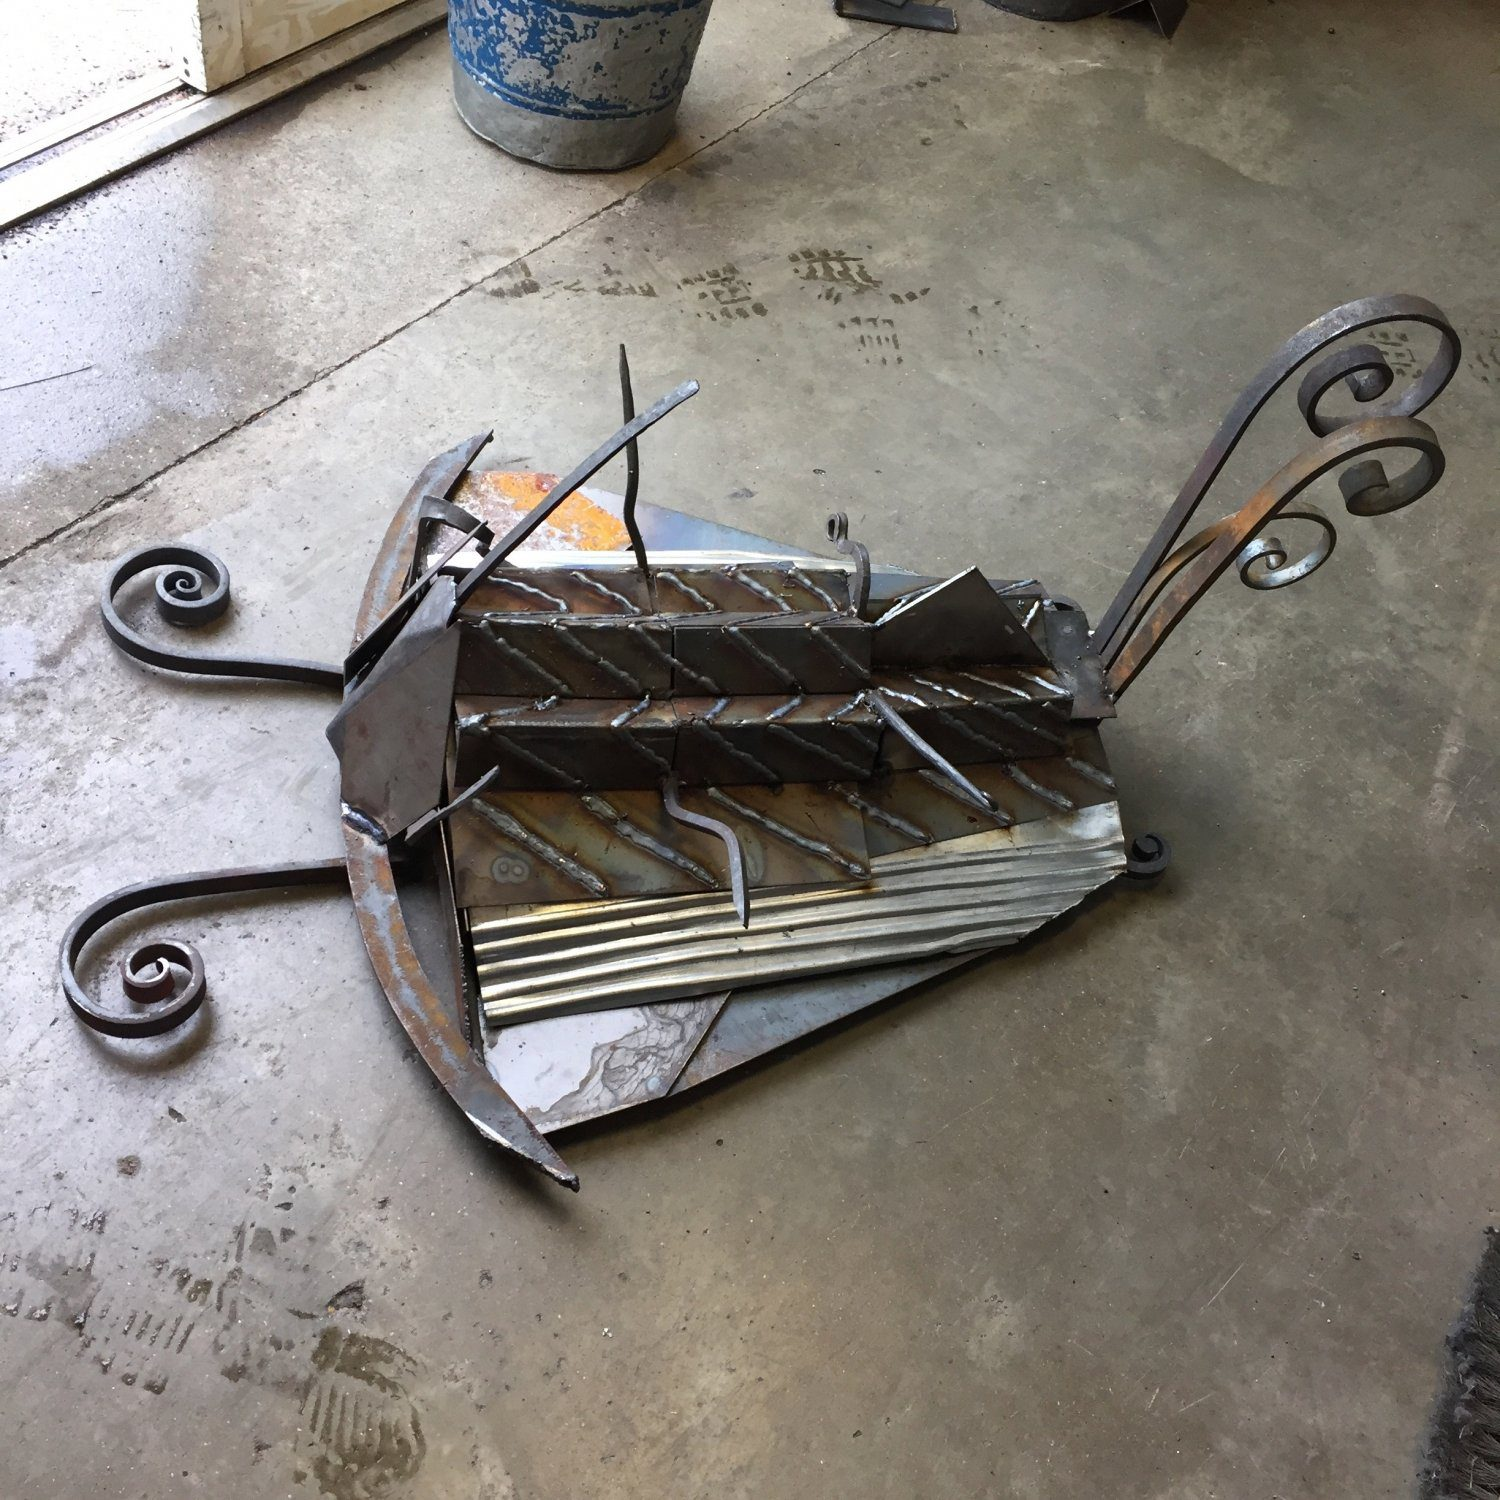 Trilobite sculpture made from scrap pieces of steel found in the the college forge and welding bays.